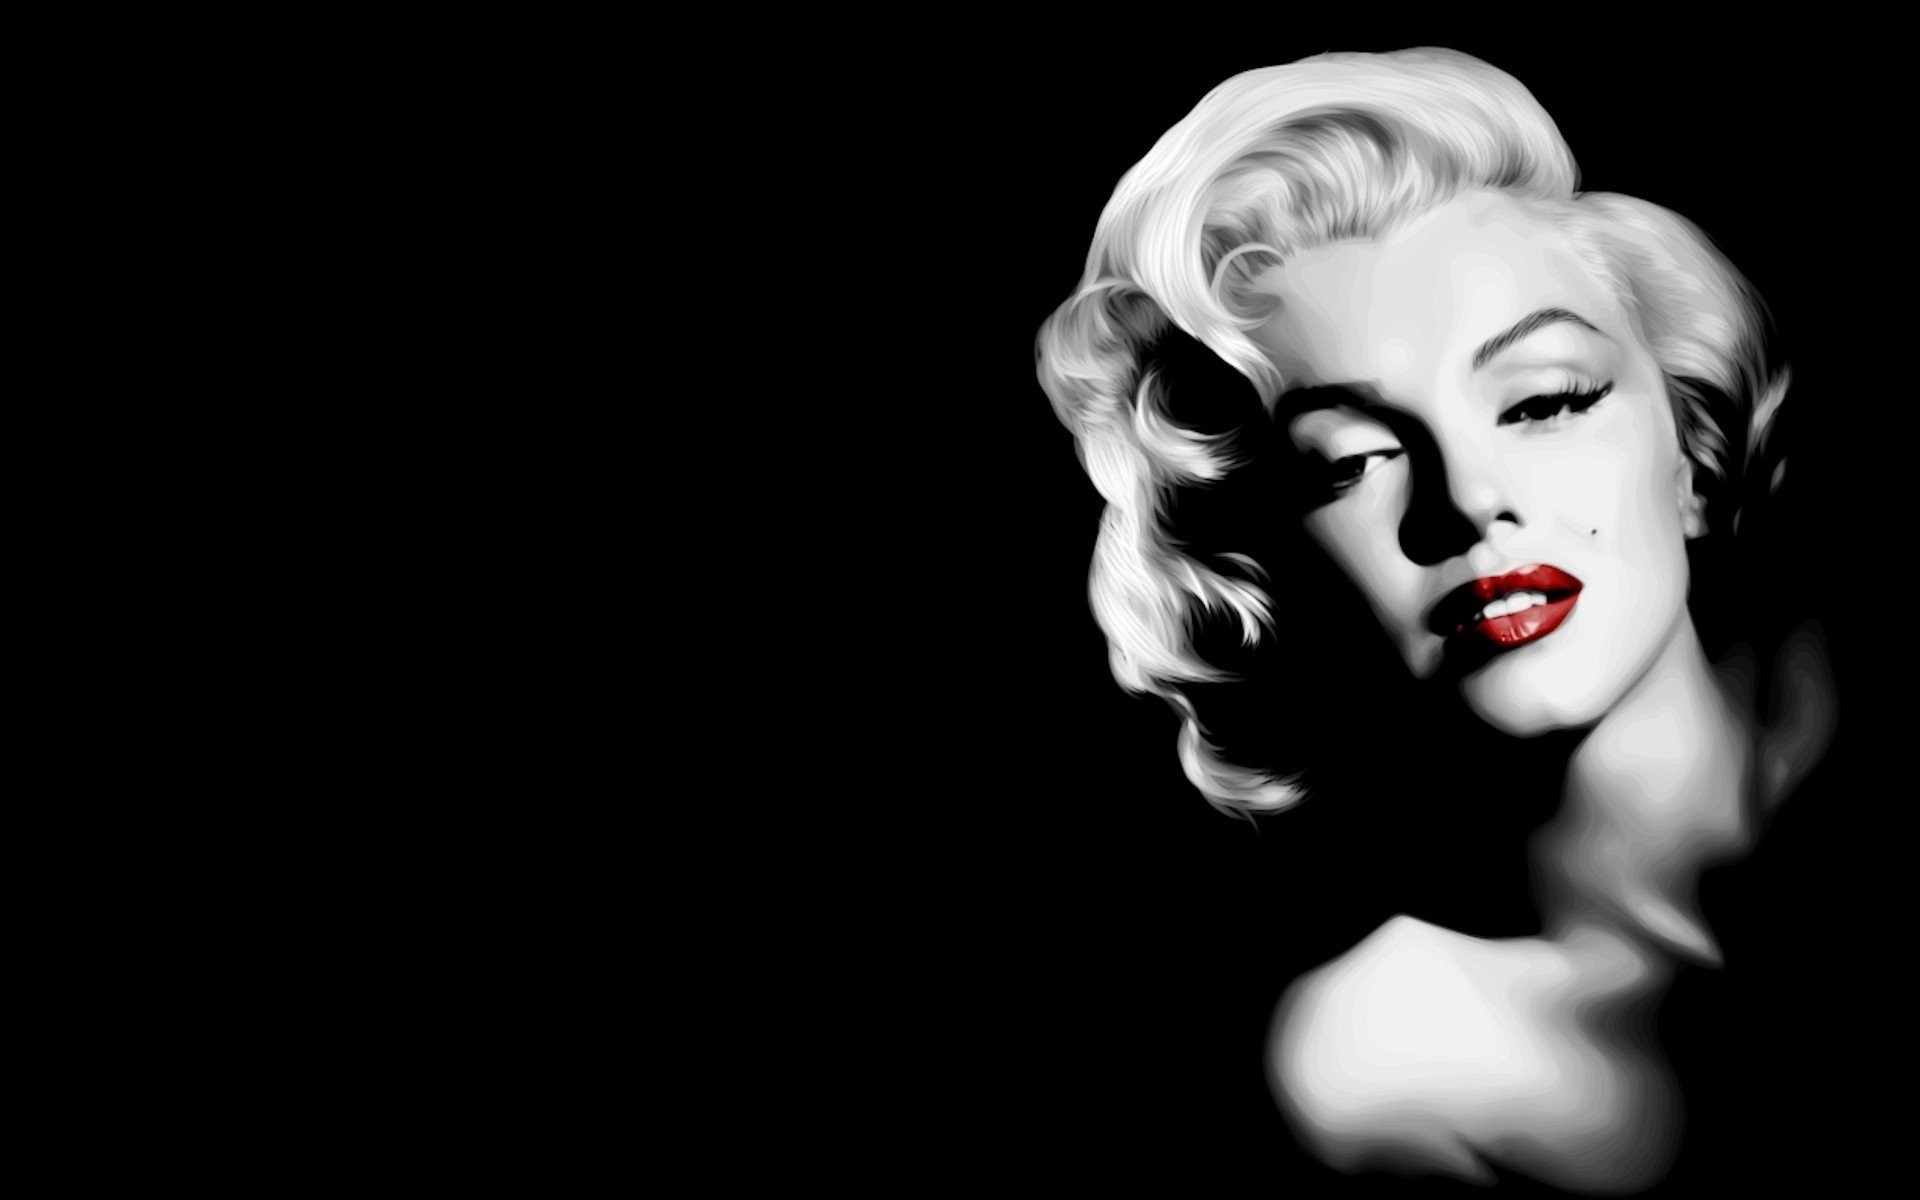 marilyn monroe wallpaper ·① download free amazing wallpapers of